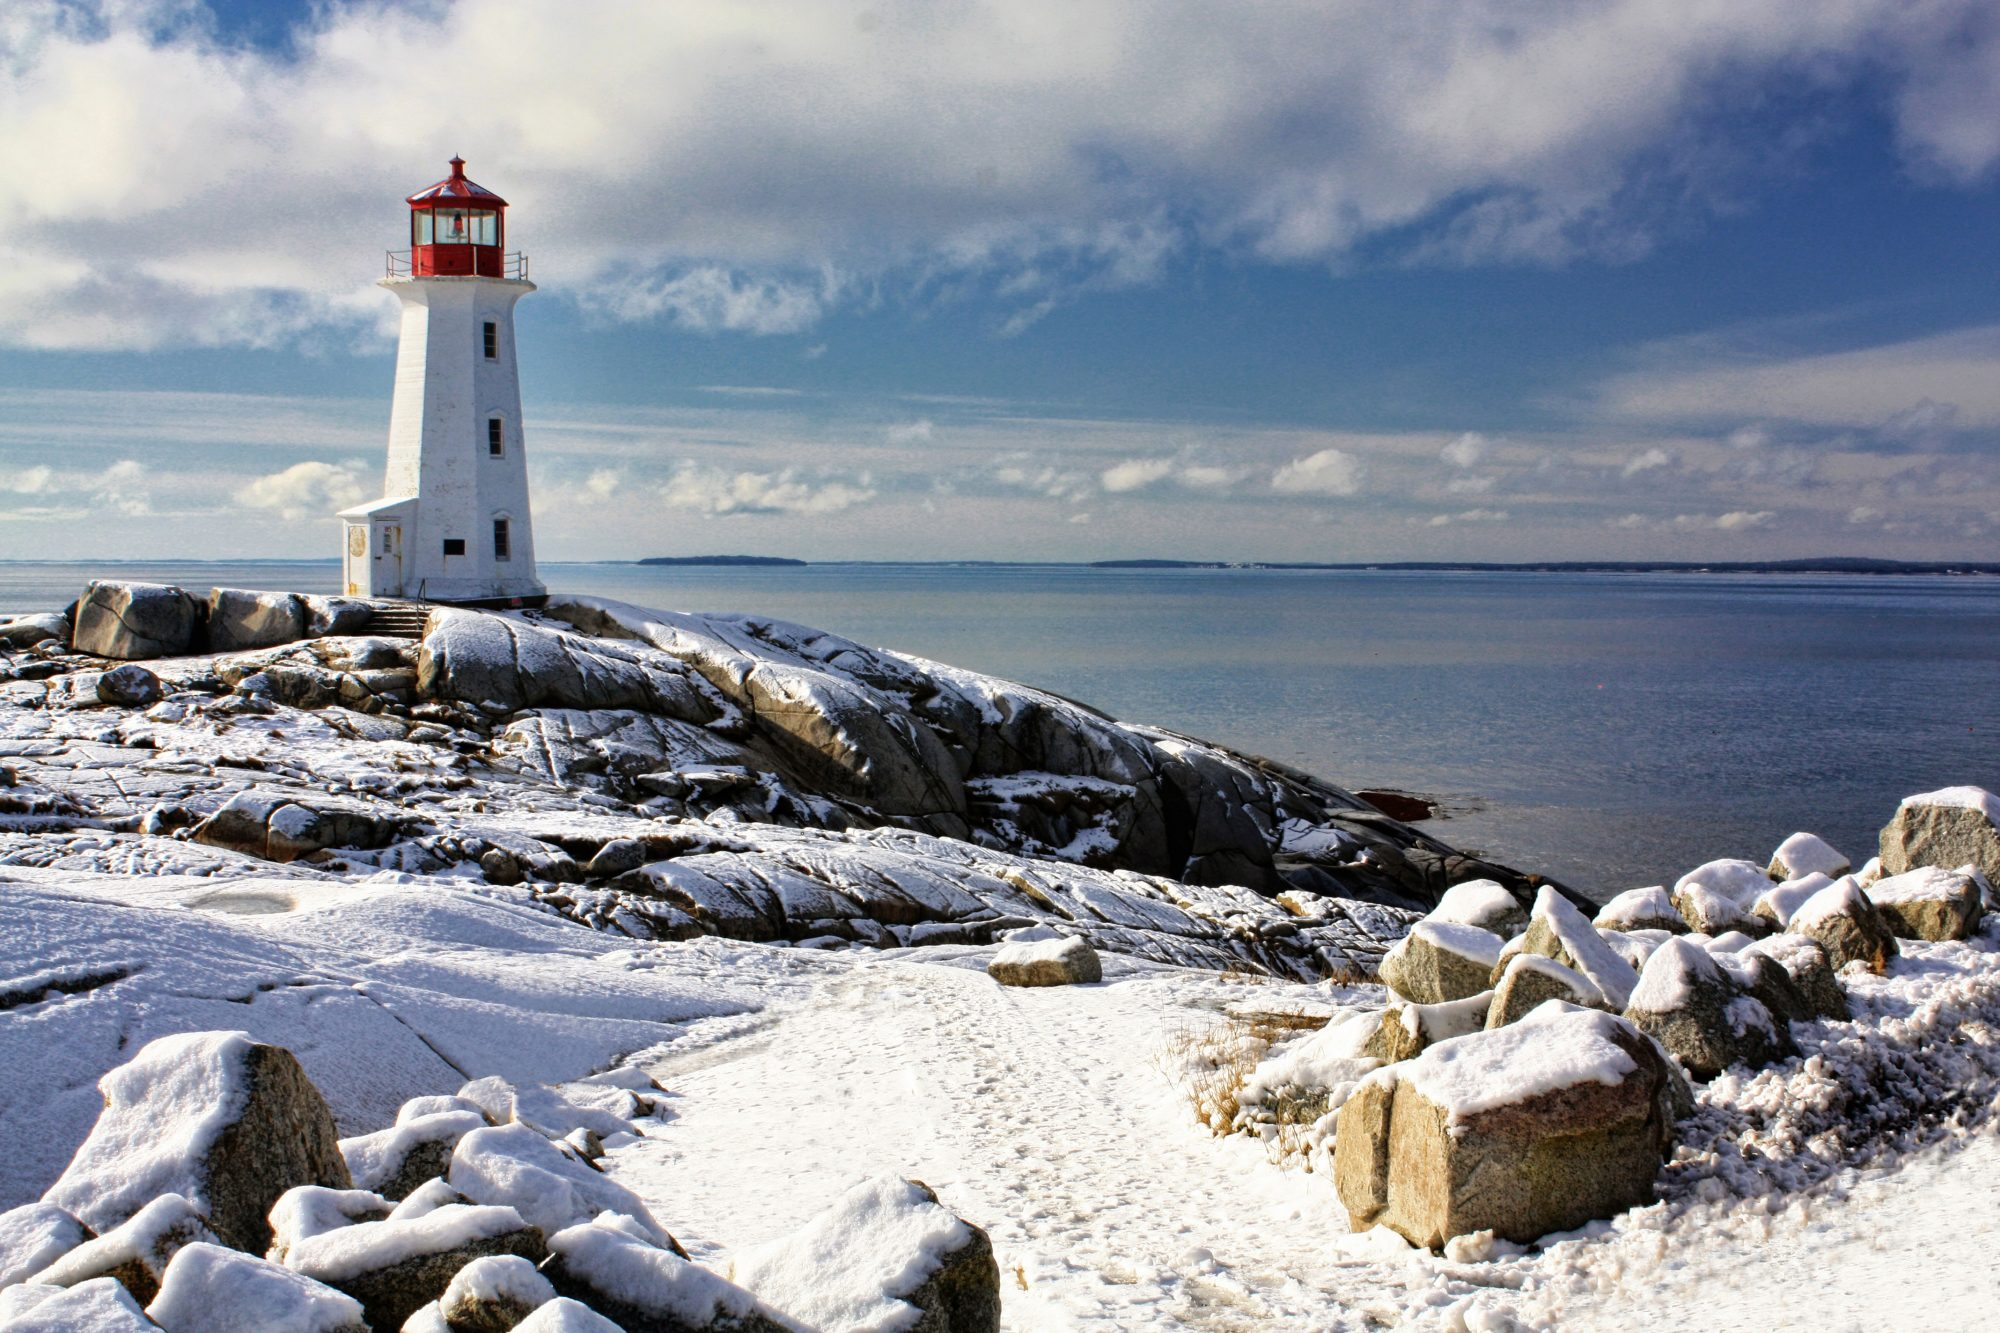 peggy's cove snowy lighthouse with water backdrop